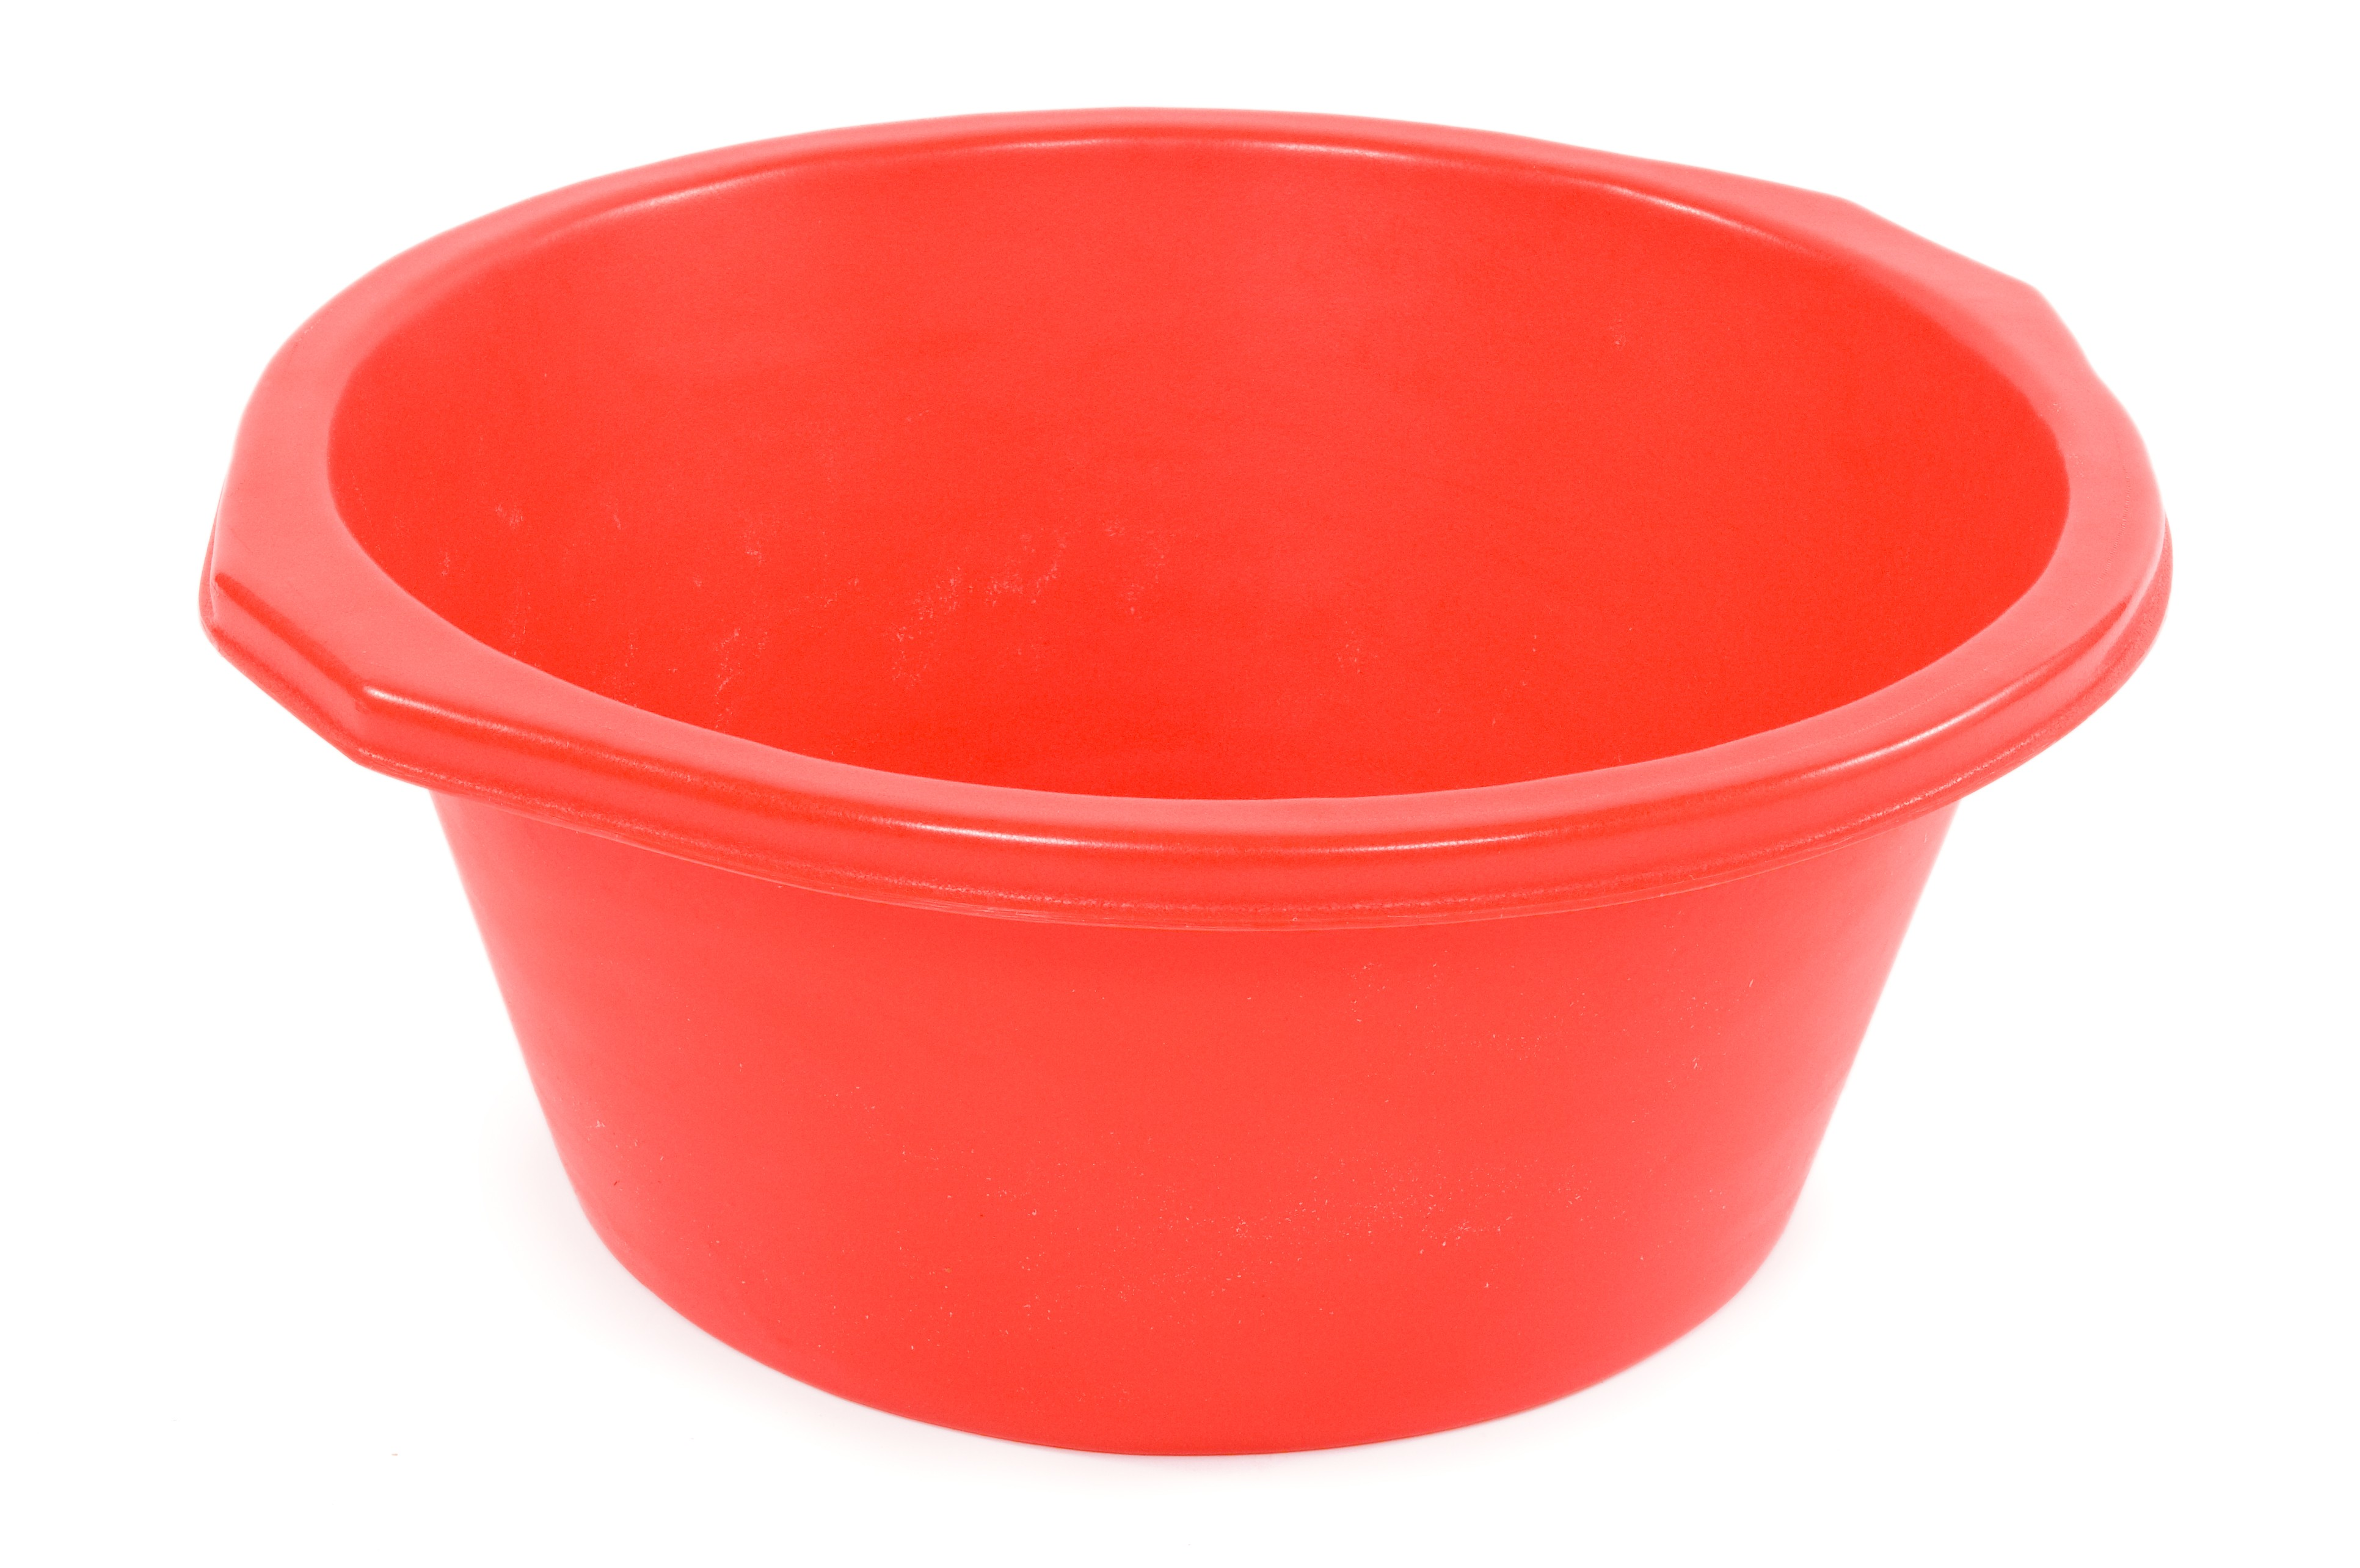 Plastic Bowls Food Grade Mixing Bowls Ingredient